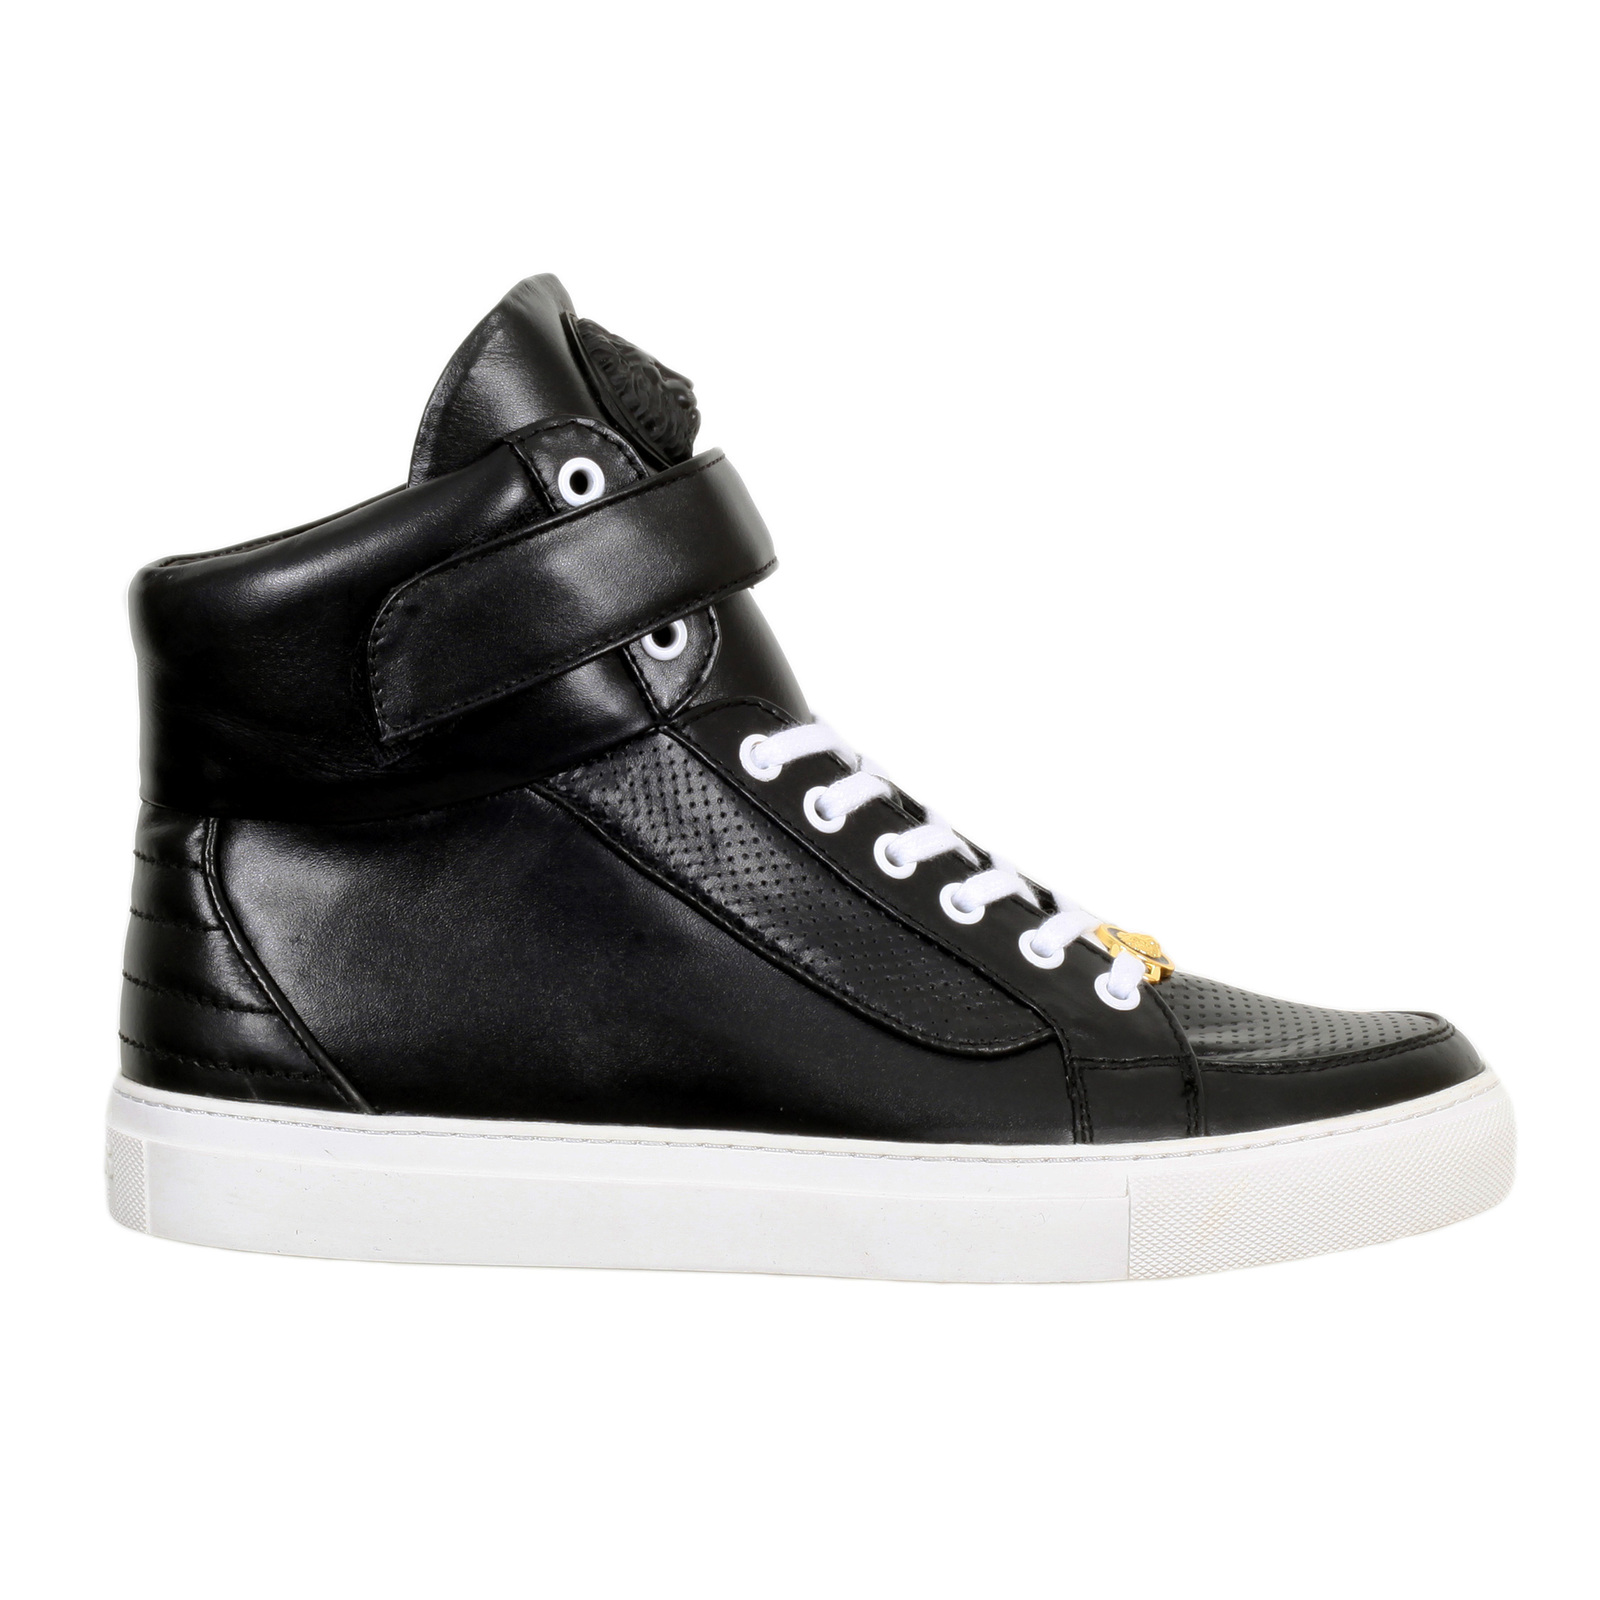 1970200c895d Buy Black Casual Shoes for Men by Versace UK at Togged